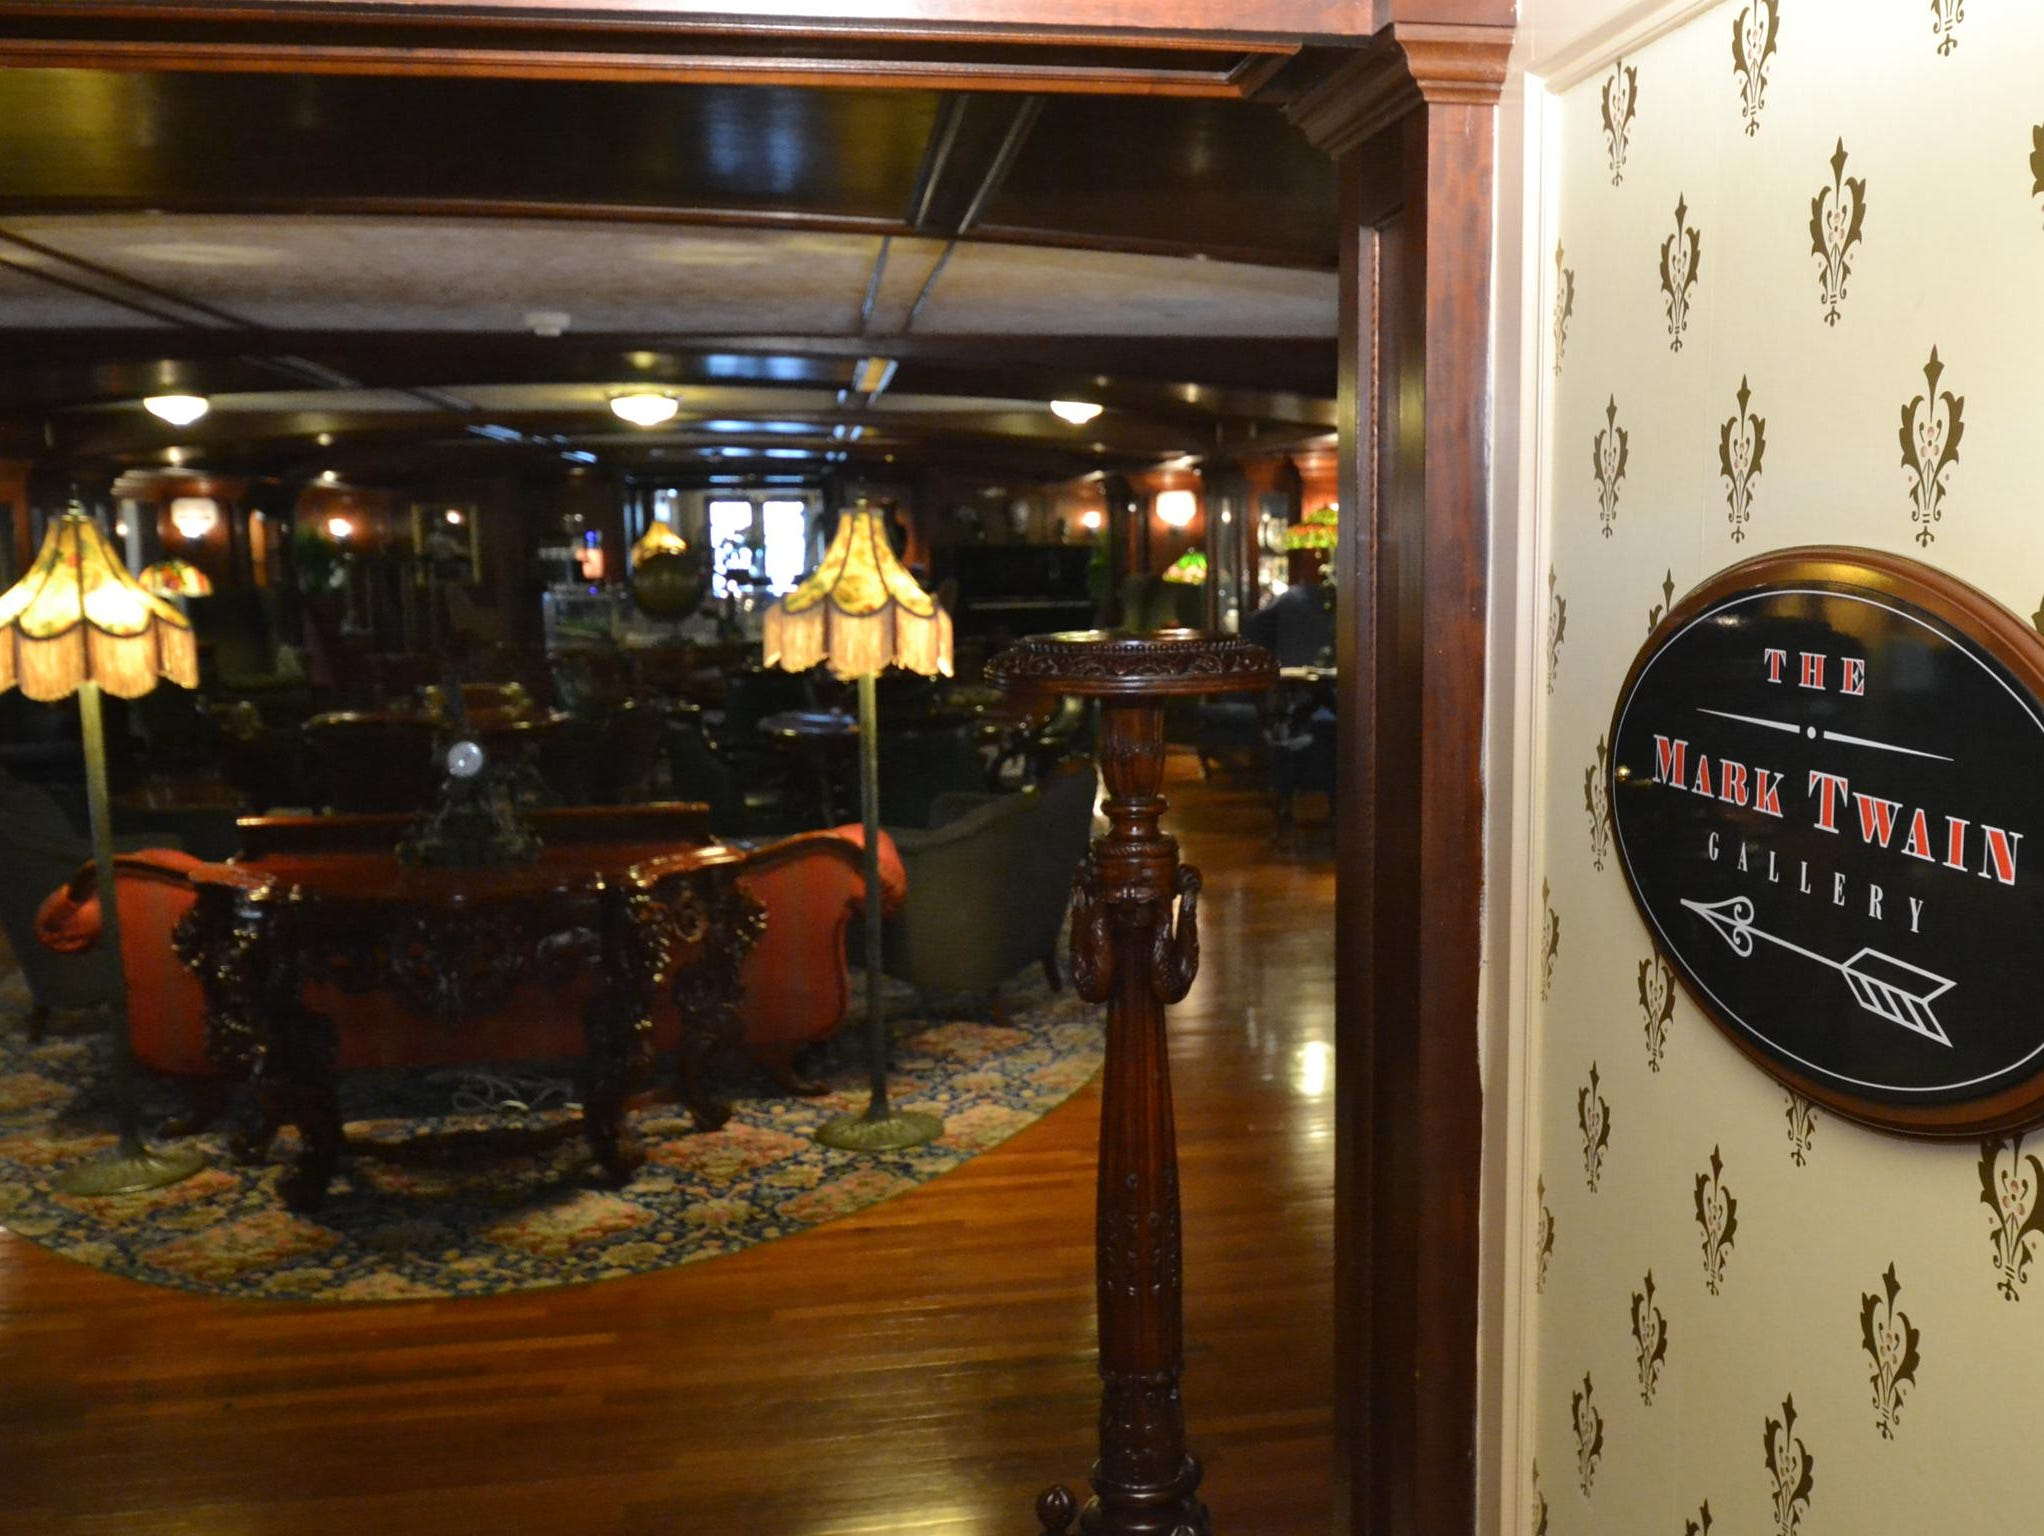 Adorned with rich paneling, crystal chandeliers and period furniture, the Mark Twain Gallery serves as a central gathering point on the American Queen.